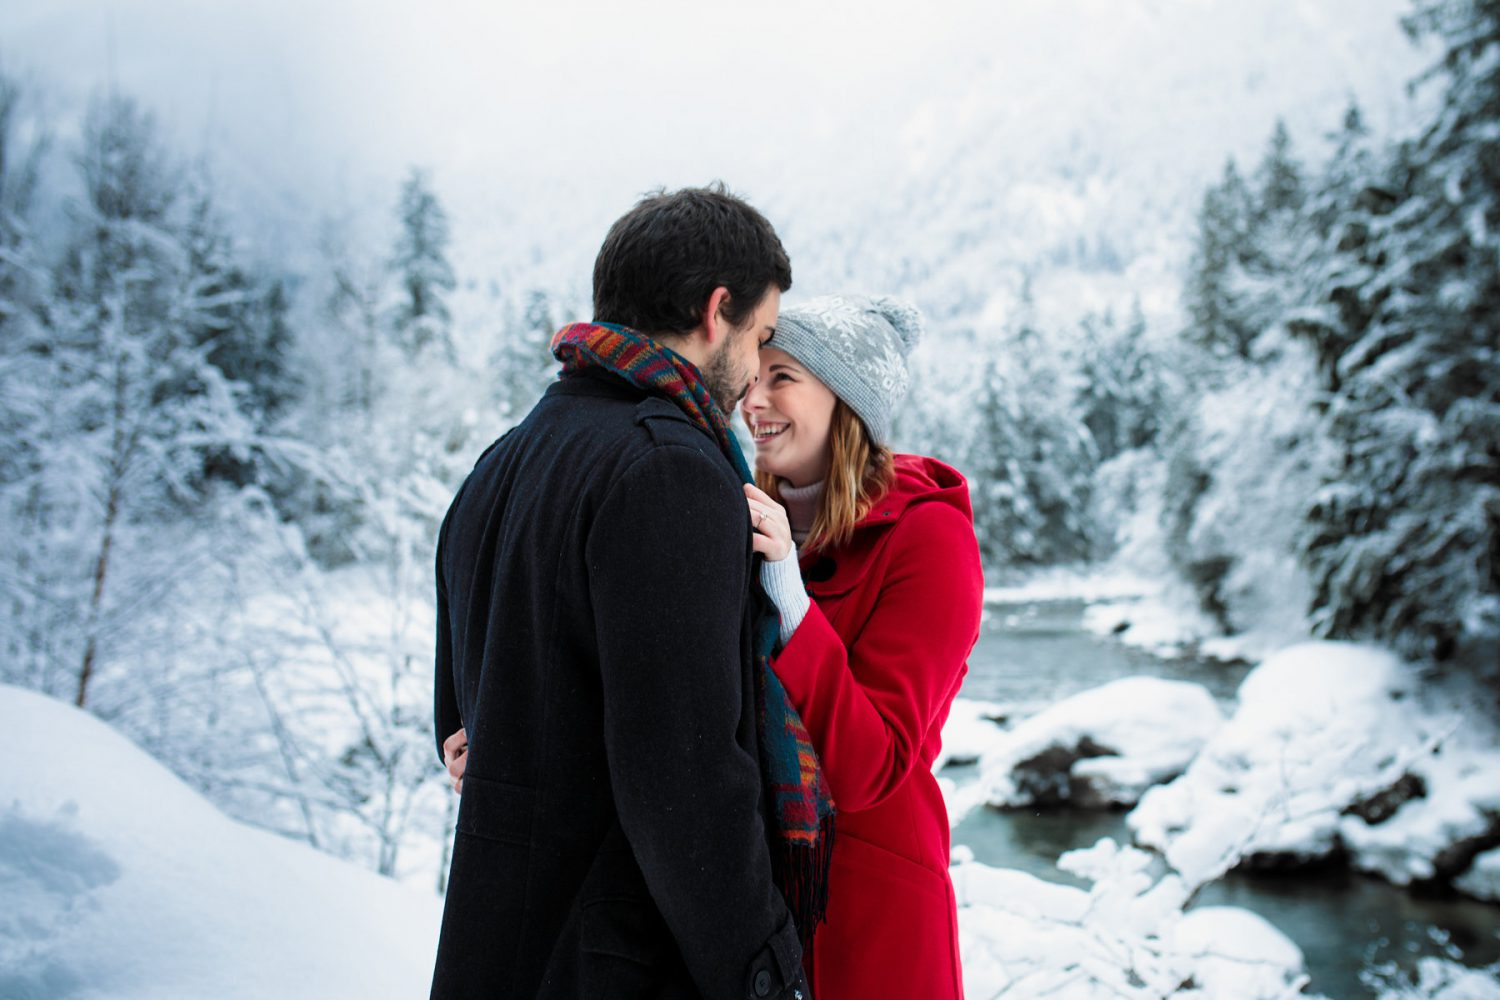 Engagement photoshoot in the winter snow